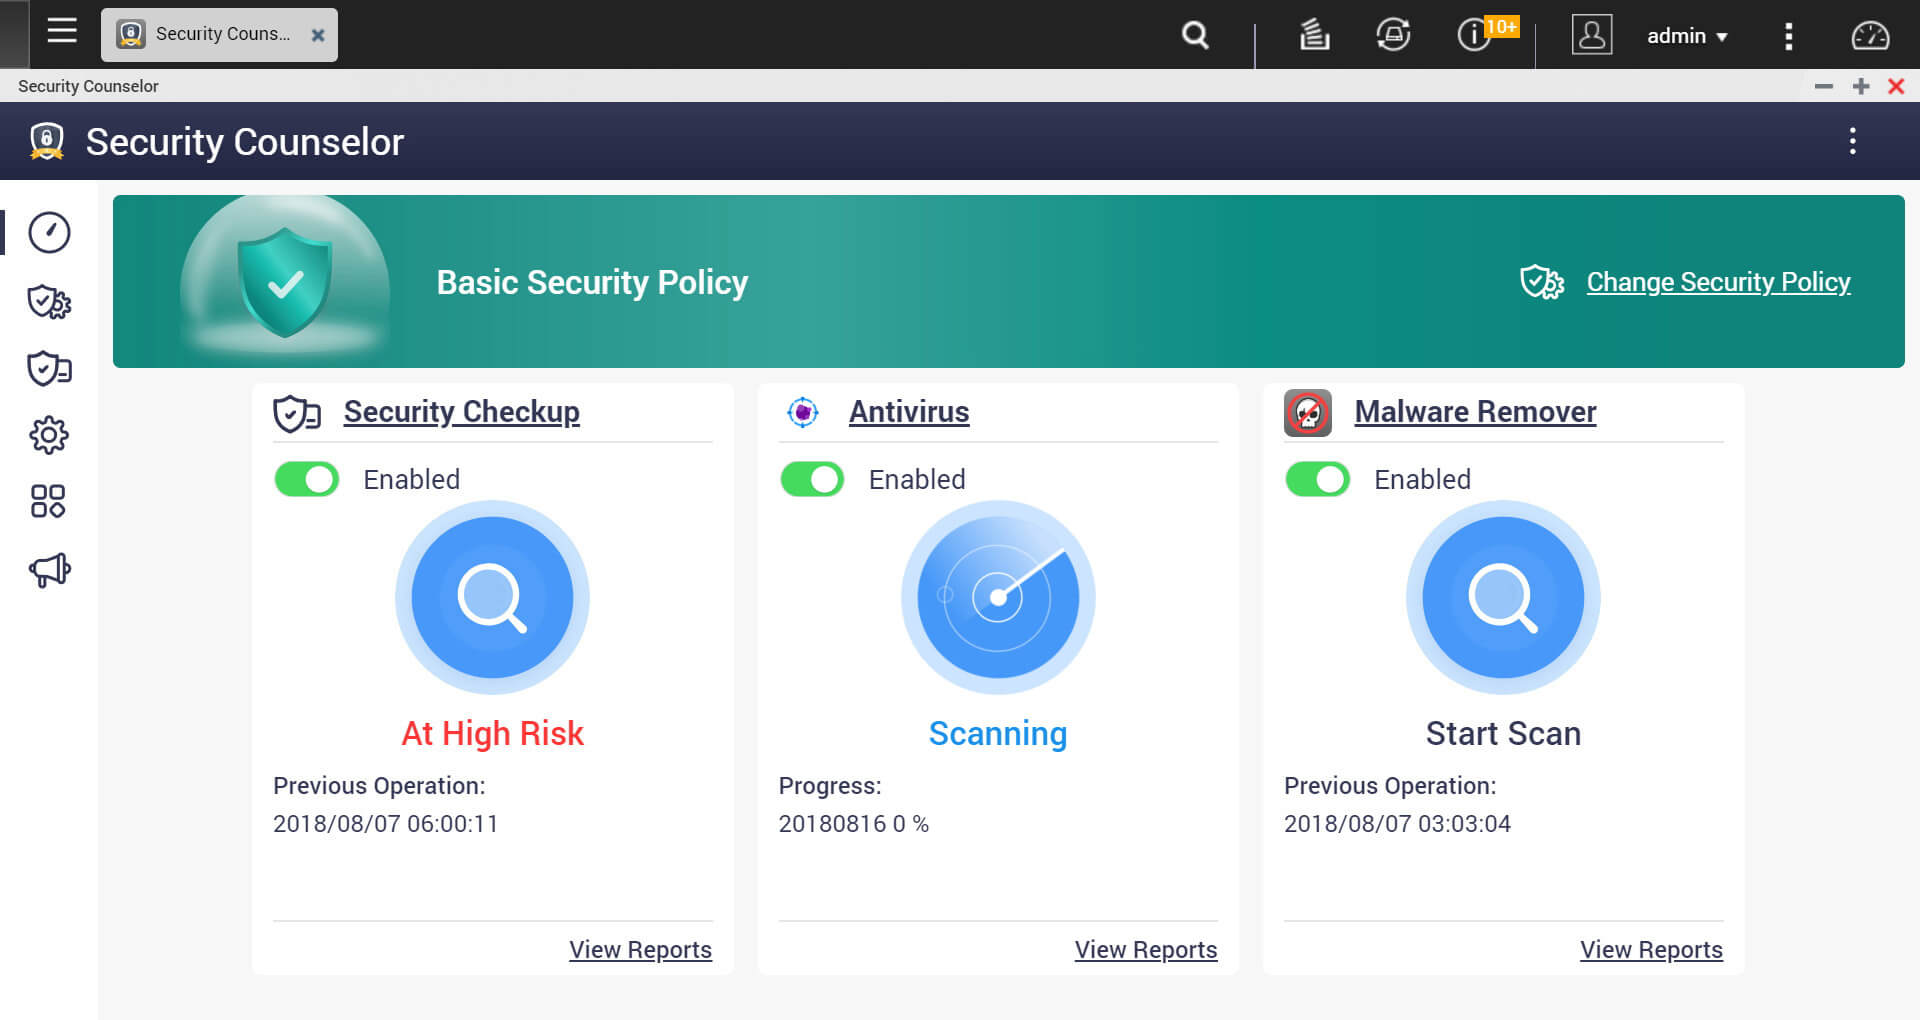 qnp security-counselor ui